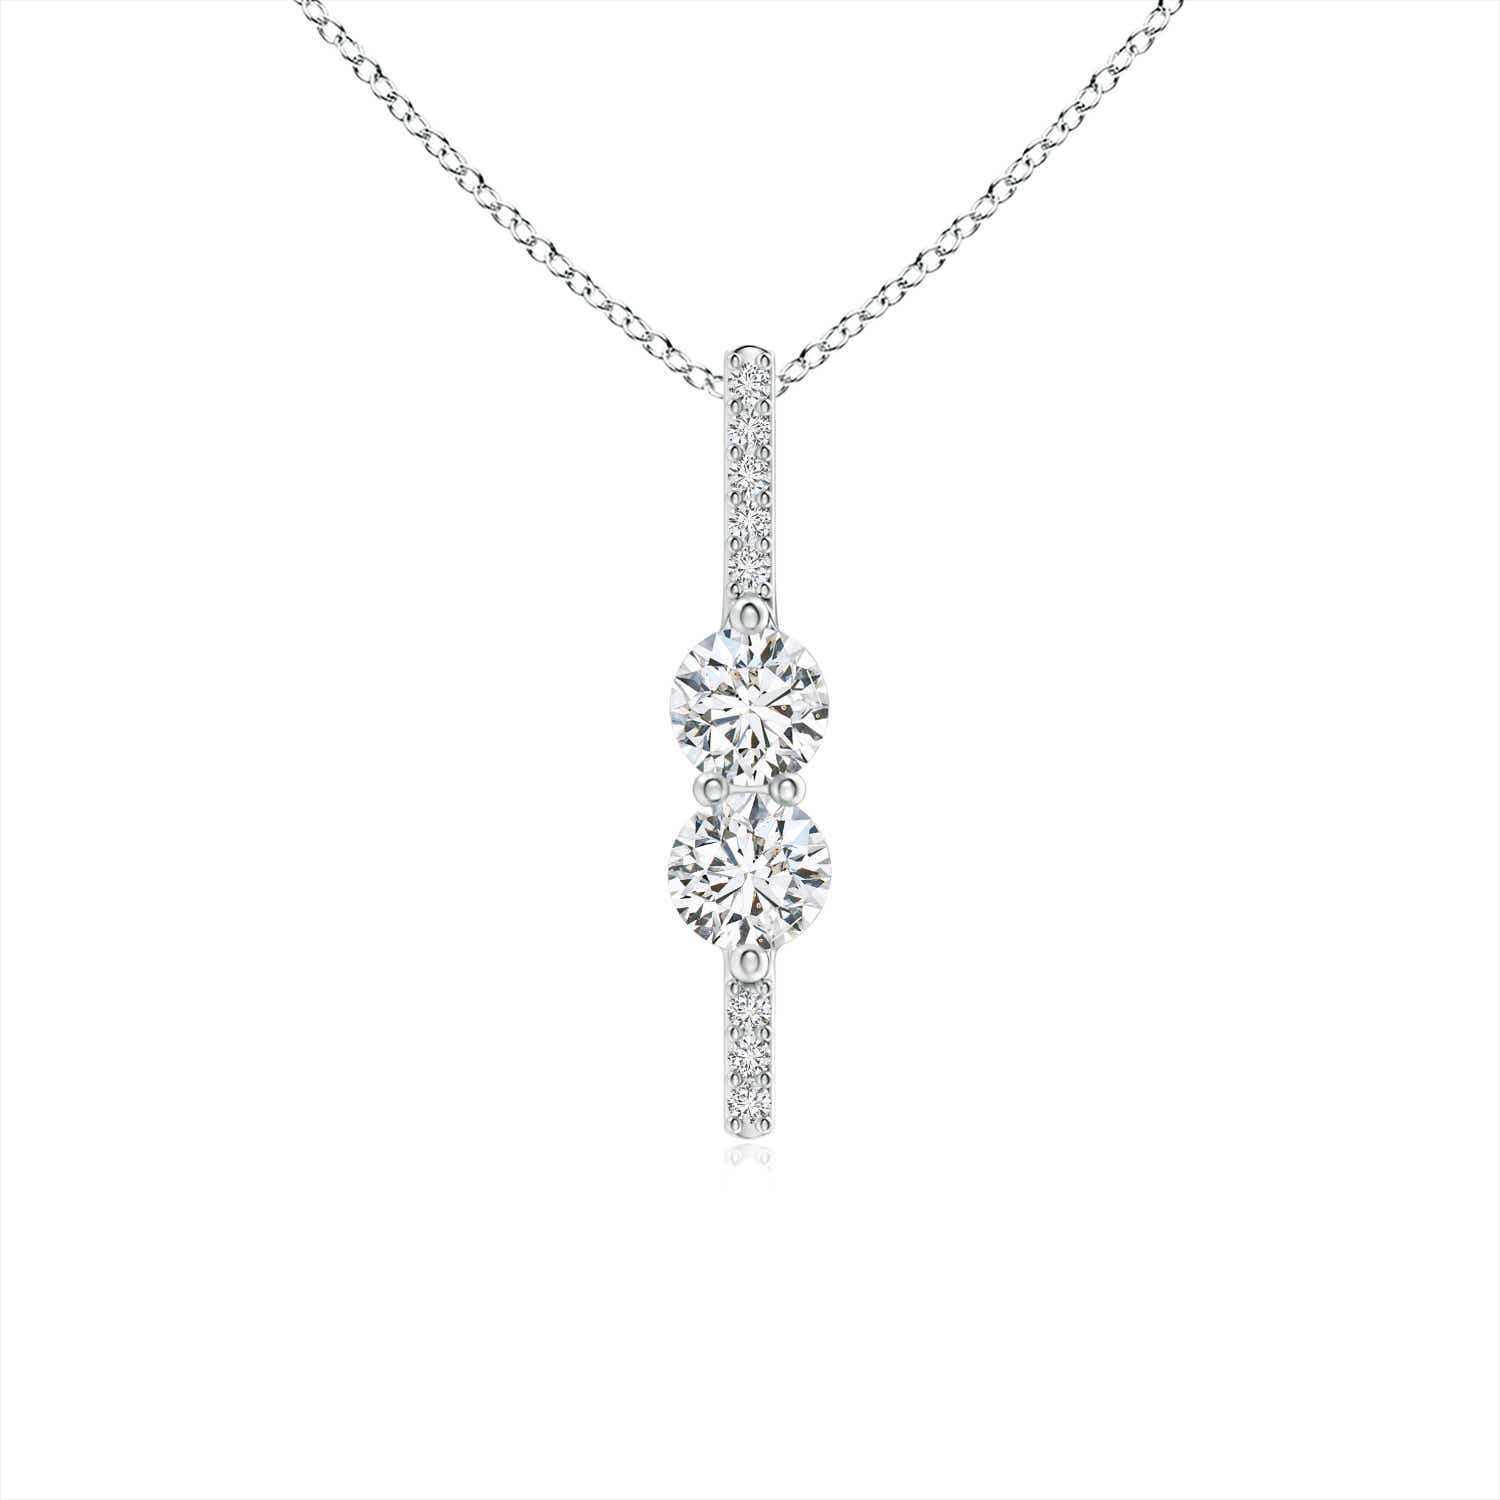 moissanite necklace photogrid ebay topic